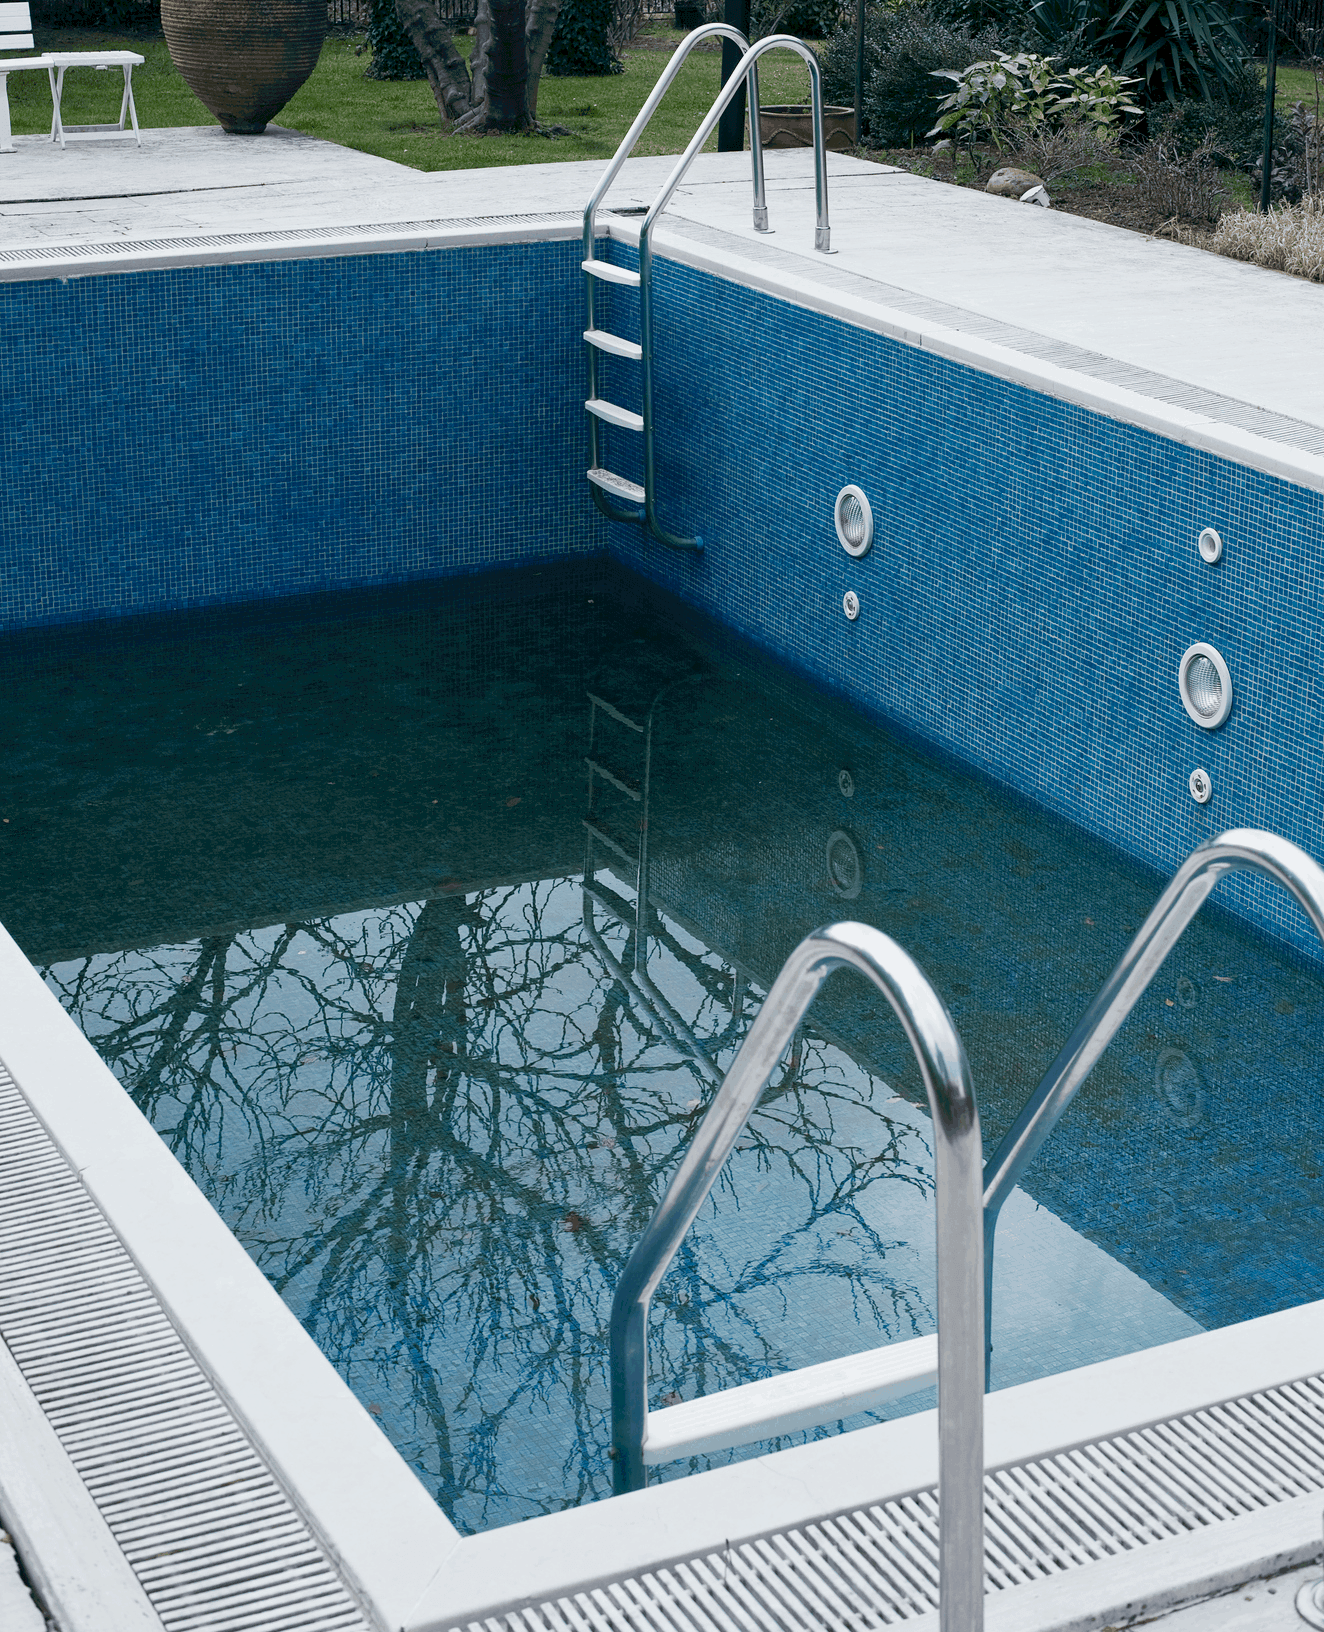 Pool leak detection Cranbourne West